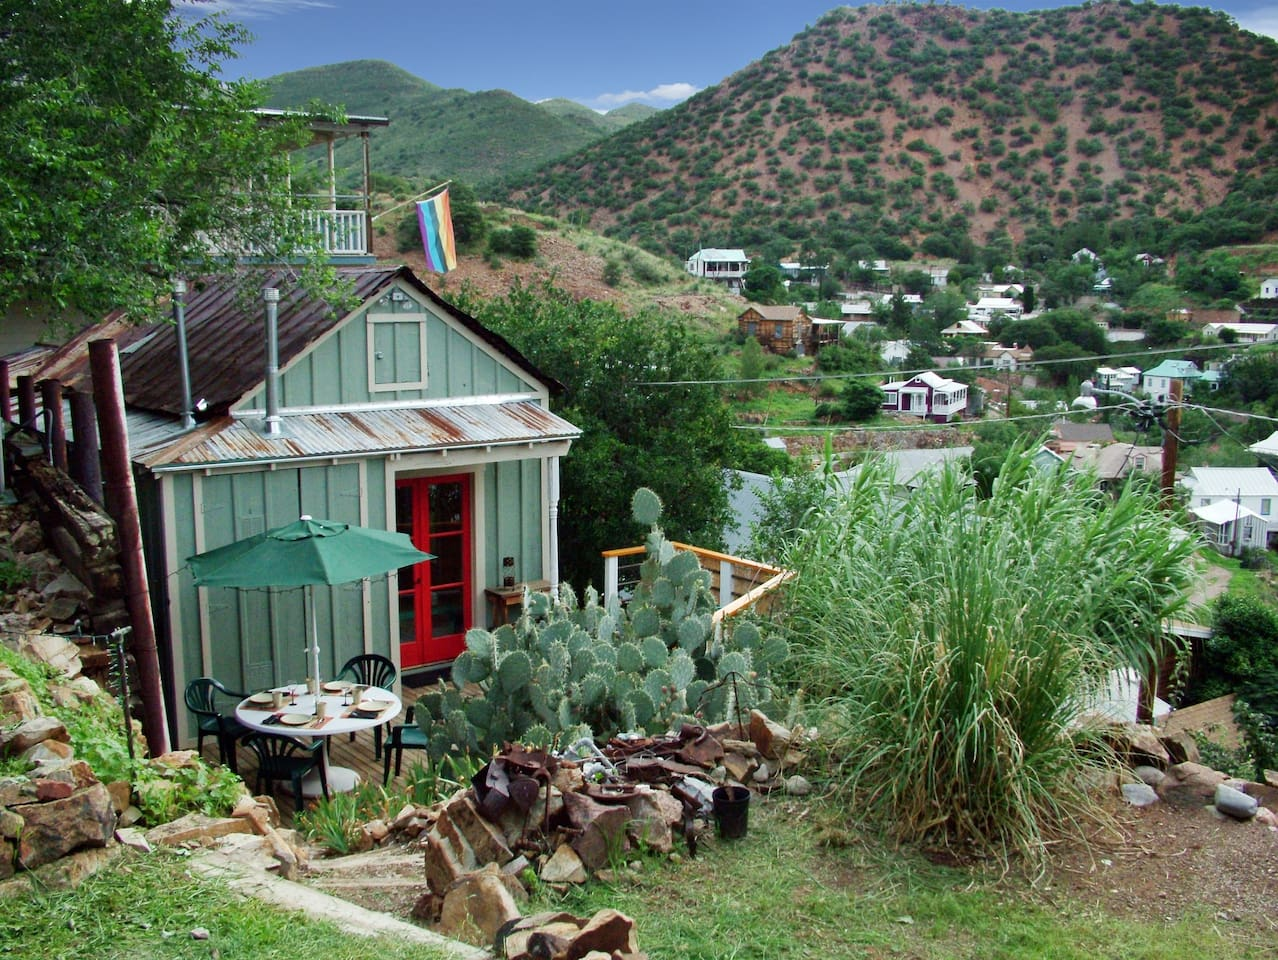 Doublejack Guesthouse, a restored miner's cabin